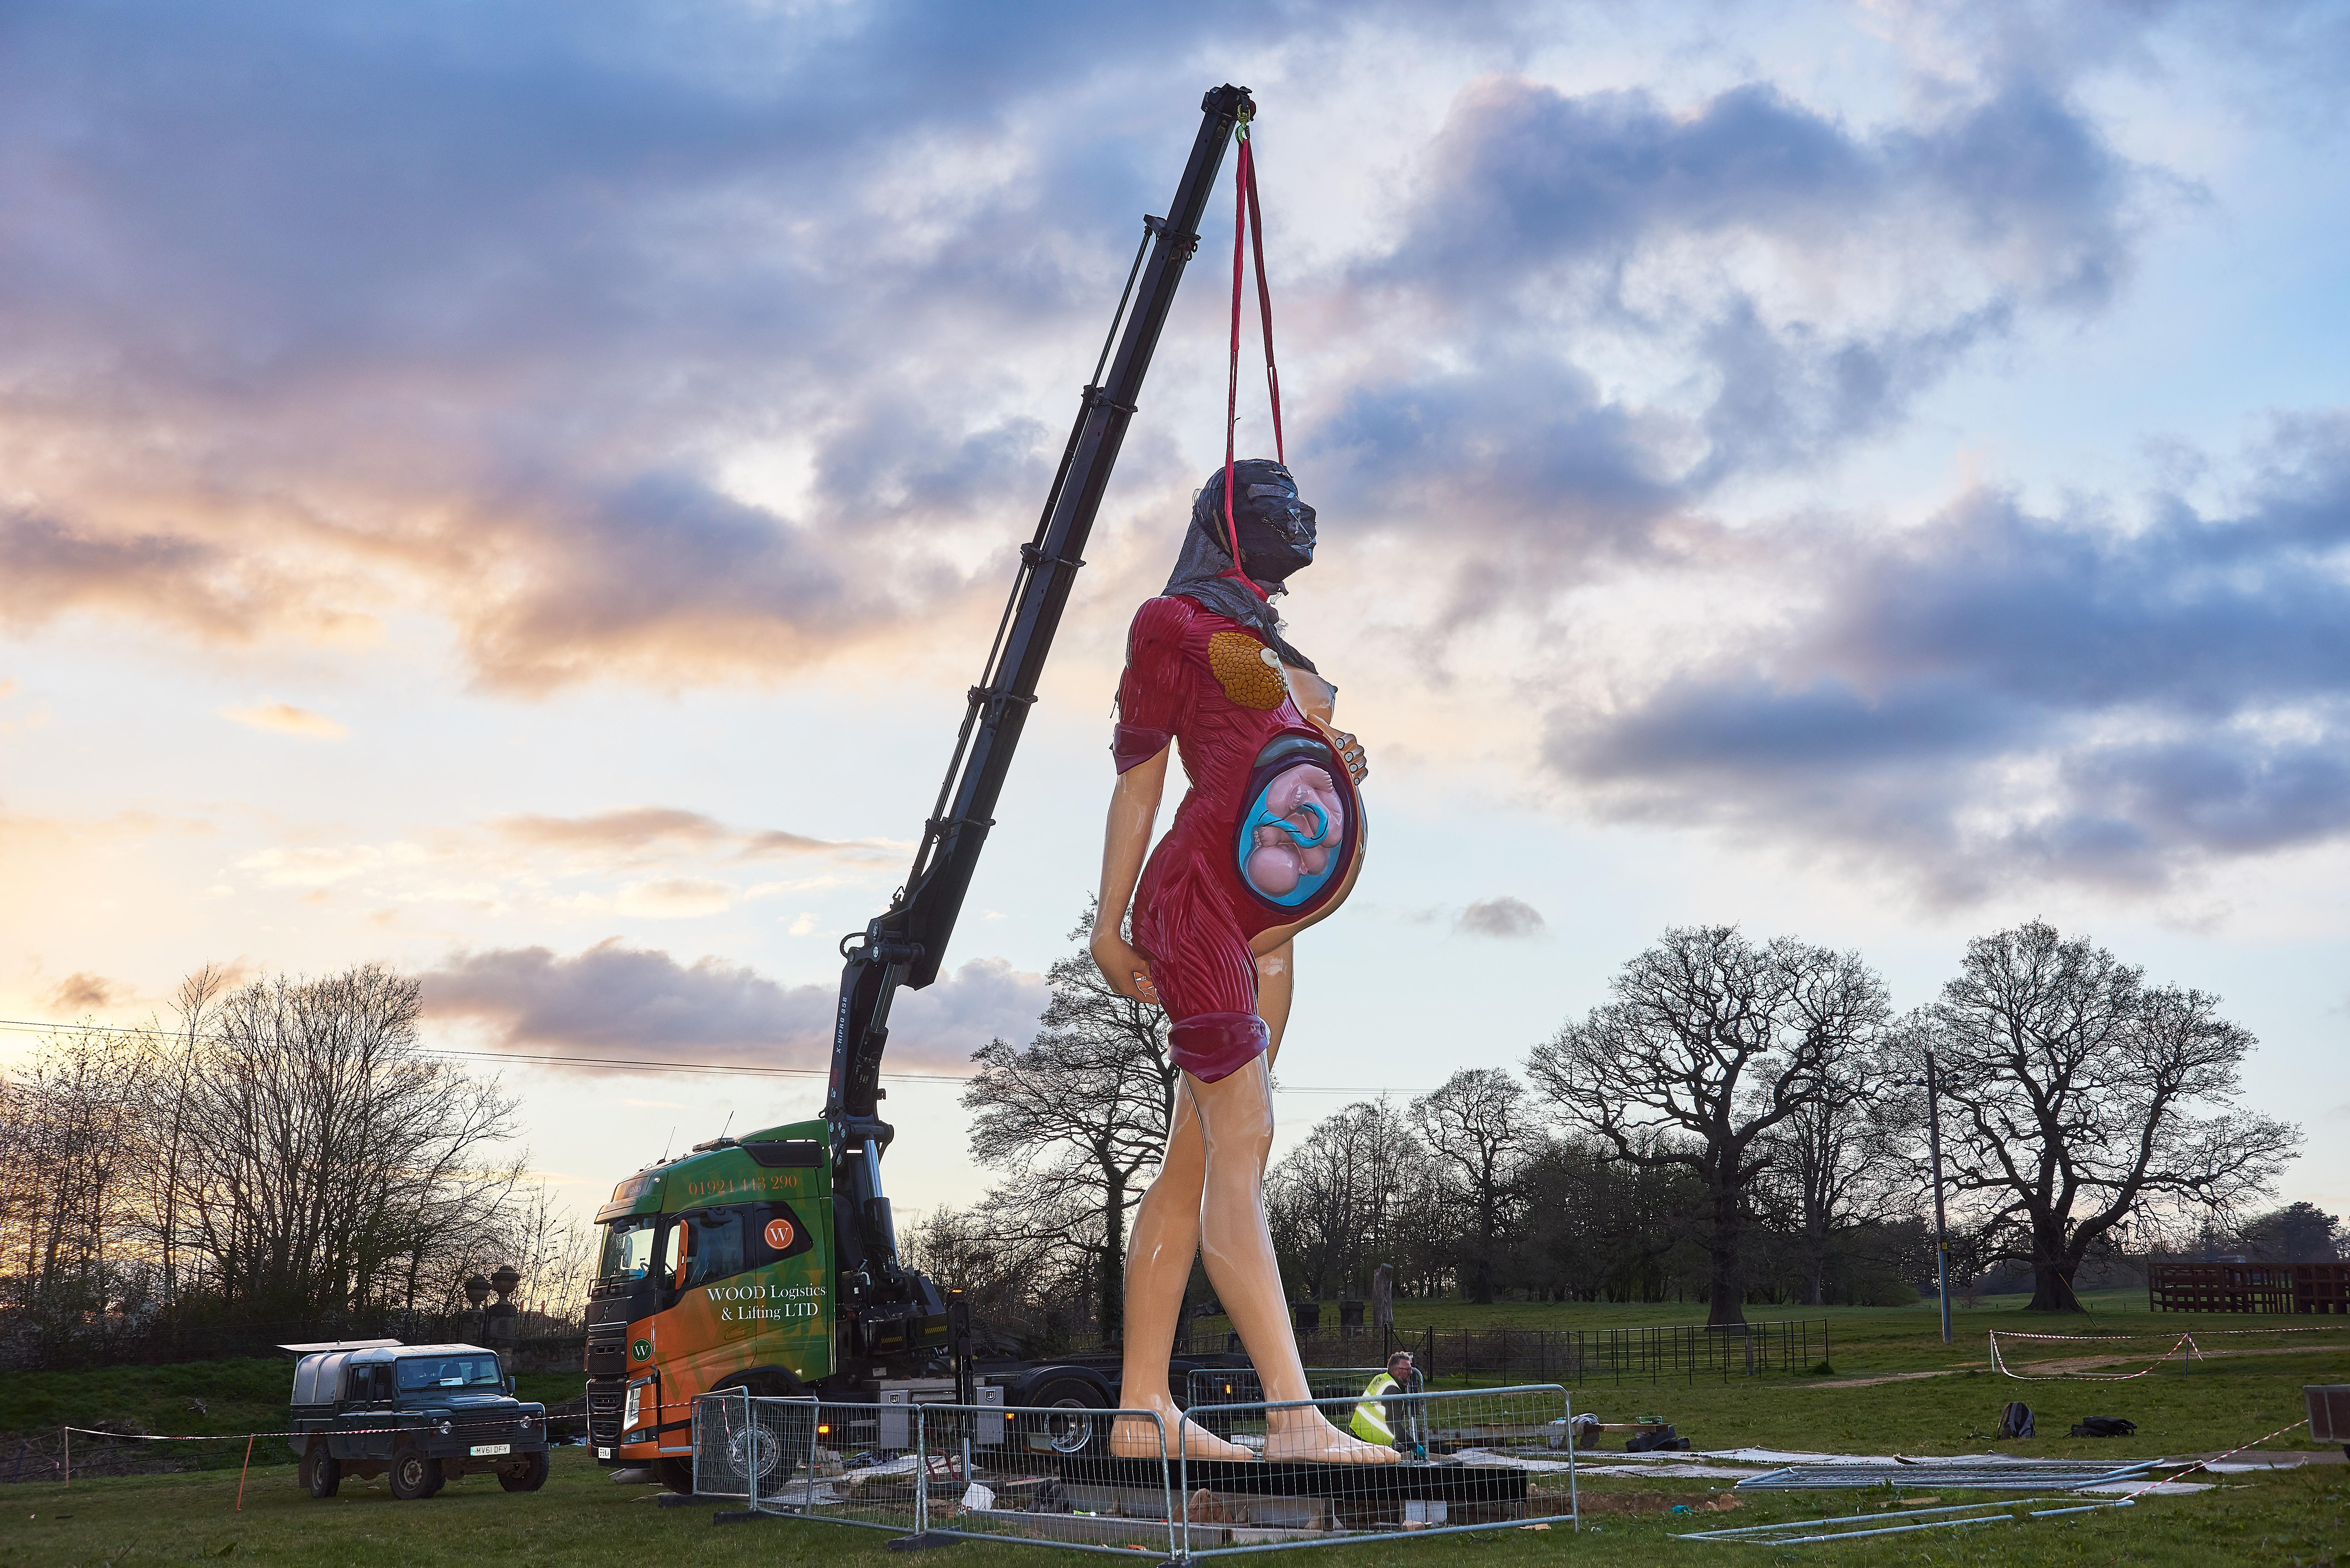 Damien Hirst homecoming announced for Yorkshire sculpture festival